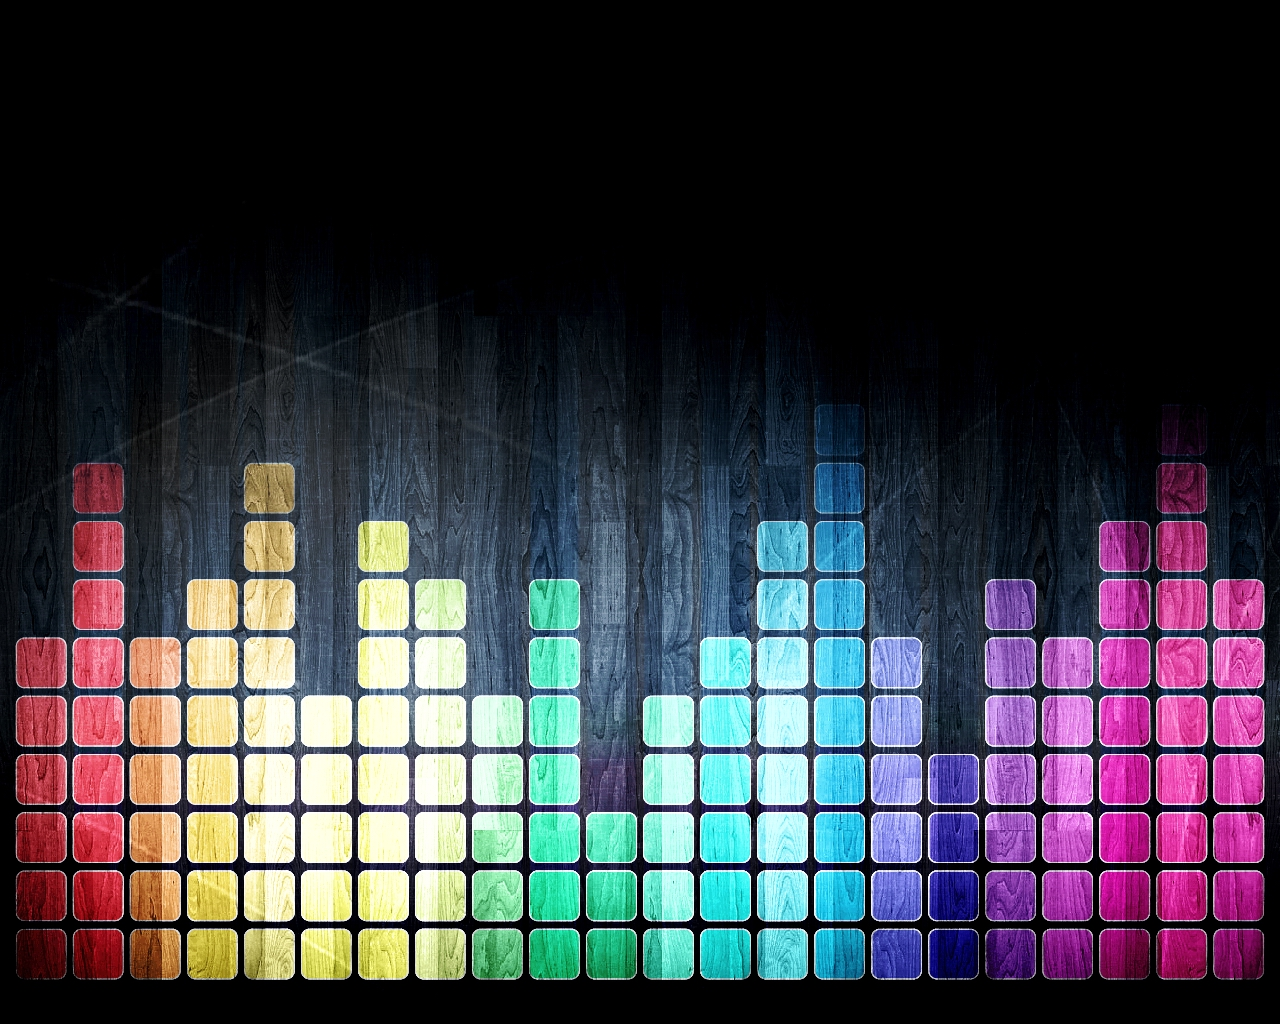 Club music charts club music chart wallpaper 1 for Vocal house music charts